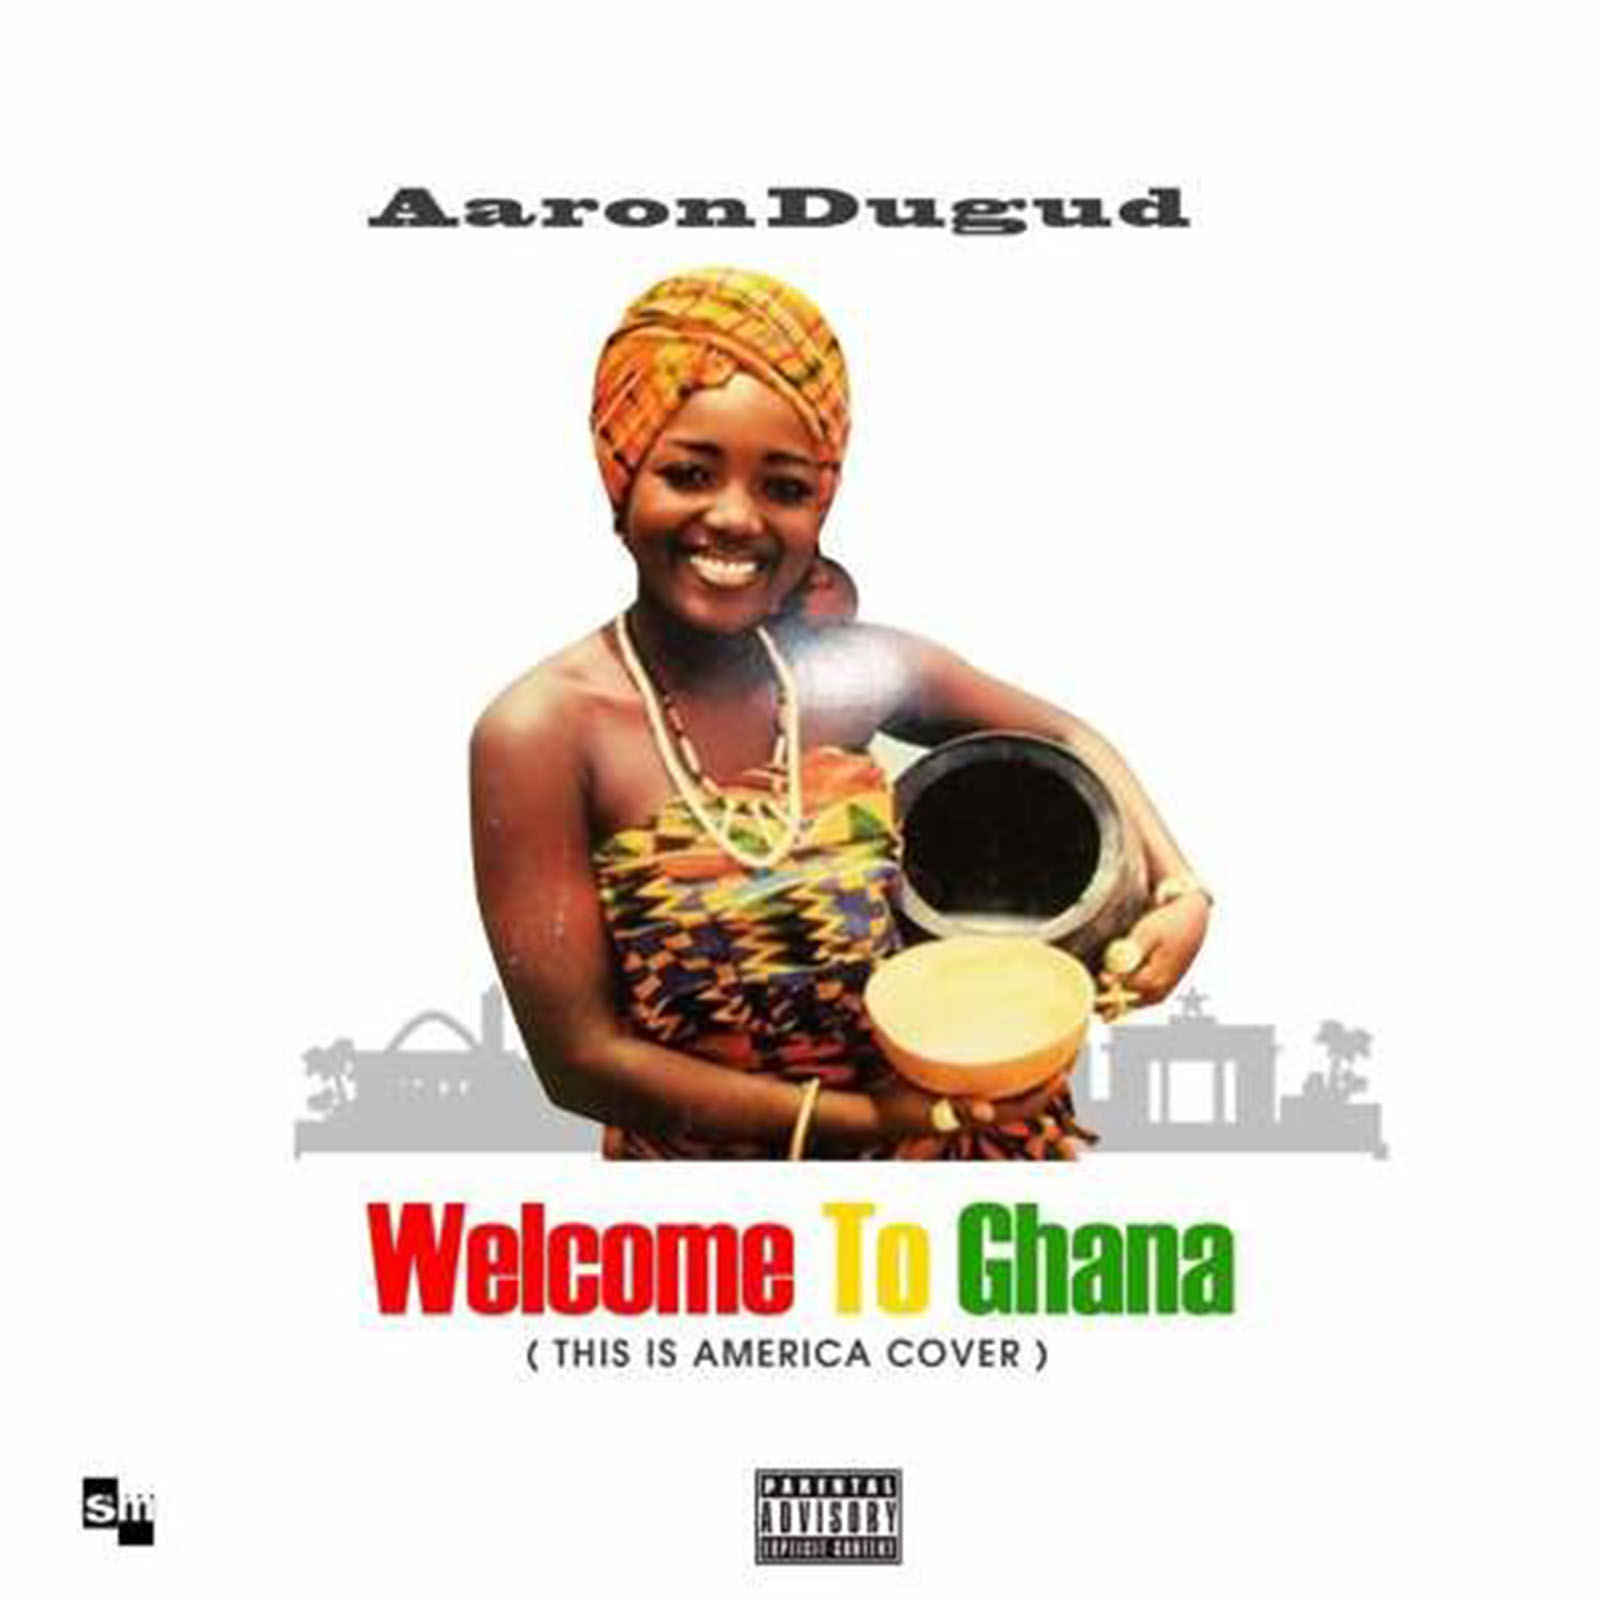 Welcome To Ghana (This is America Cover) by Aaron Dugud